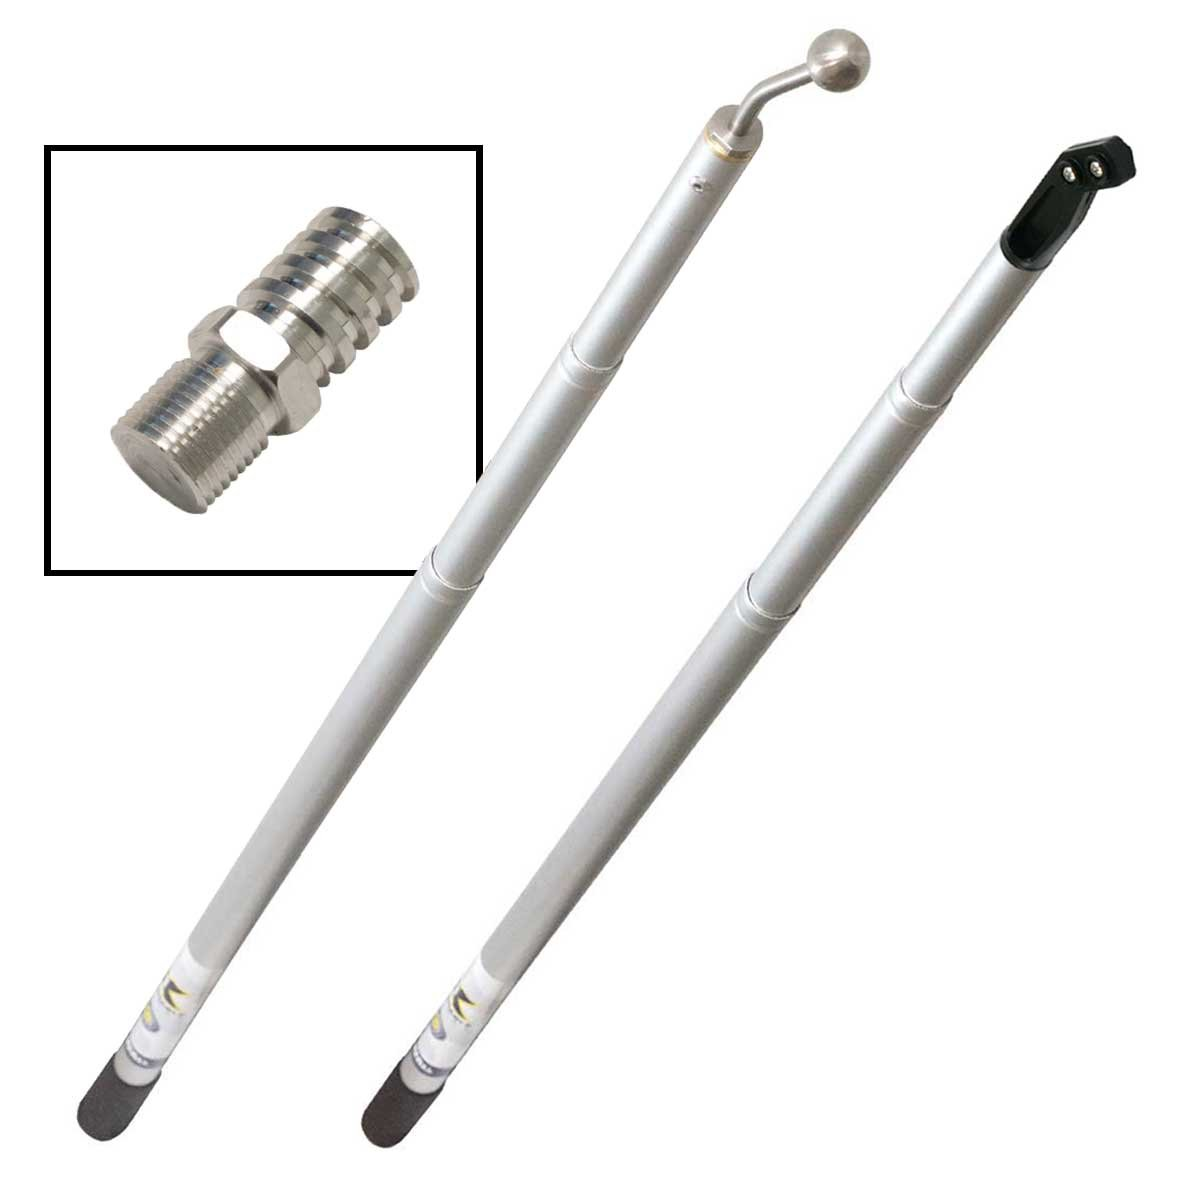 Rankee Extendable Drywall Finishing Tool Handle 3' - 8' (Nail Spotter, Angle Head, Adapters) by Laco/1925